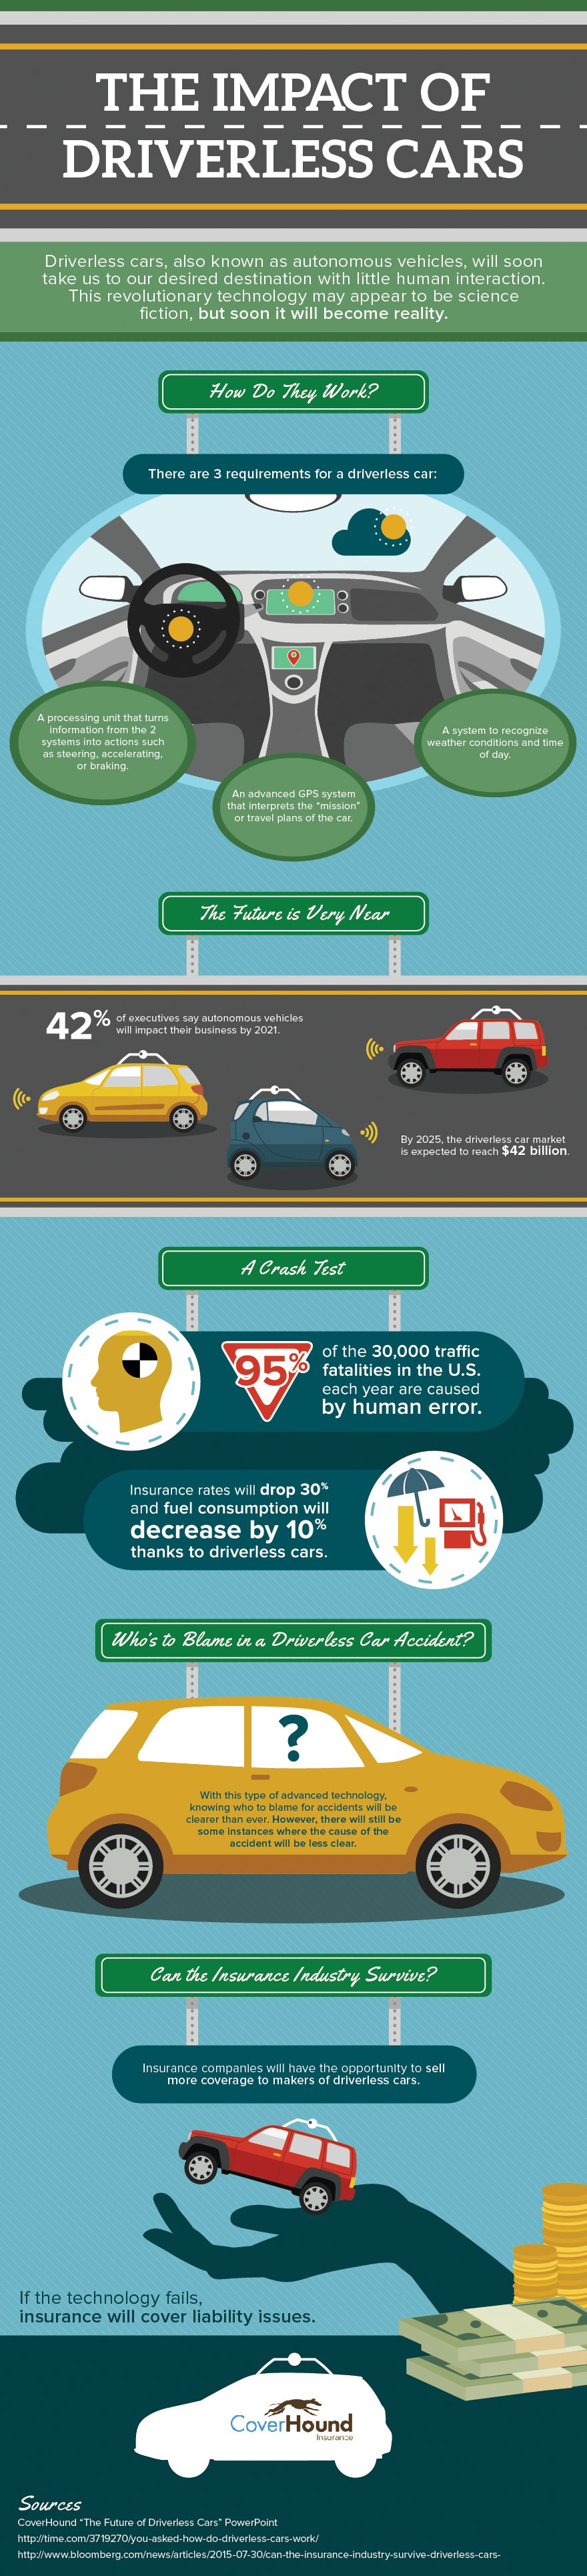 The Impact of Driverless Cars (Infographic)